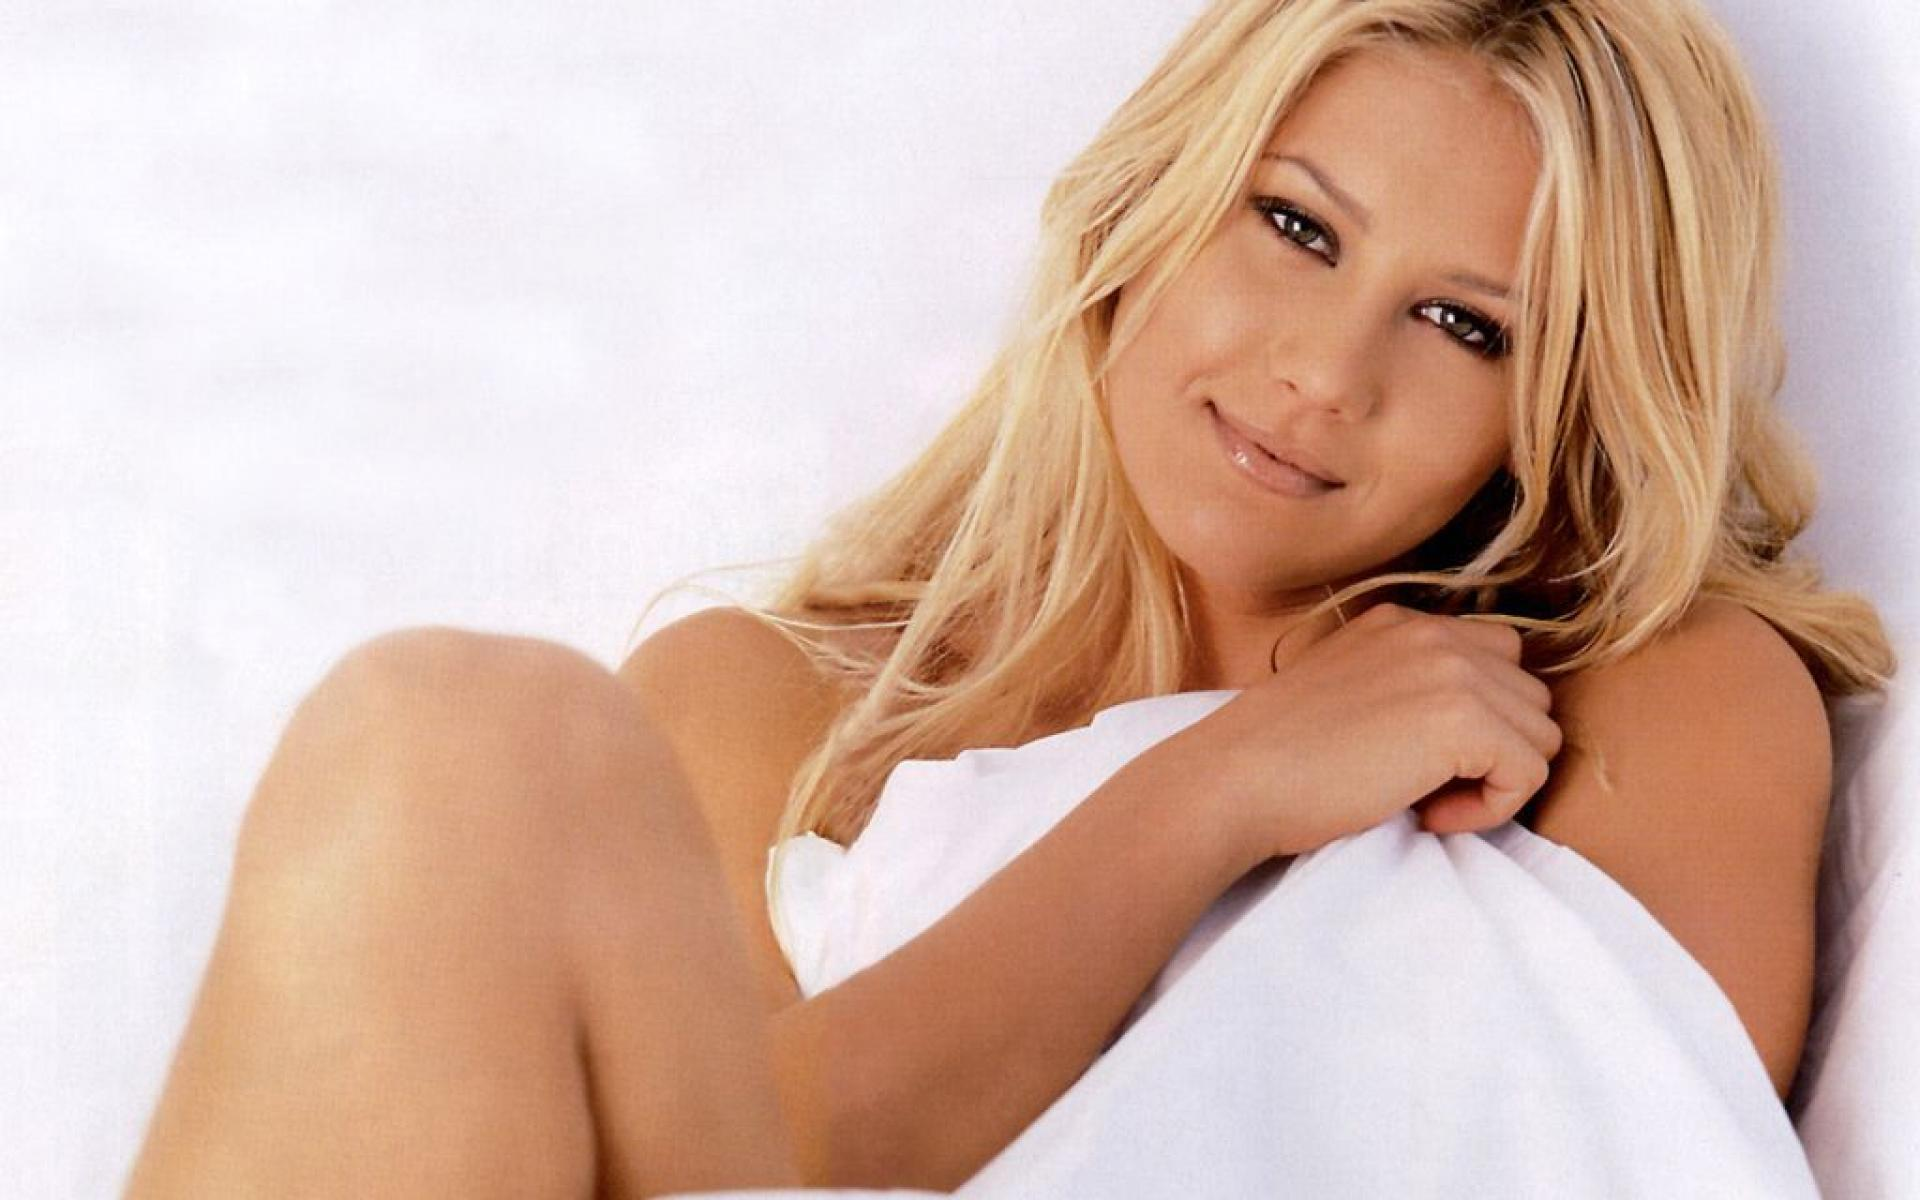 Anna Kournikova HD Girls k Wallpapers Images Backgrounds